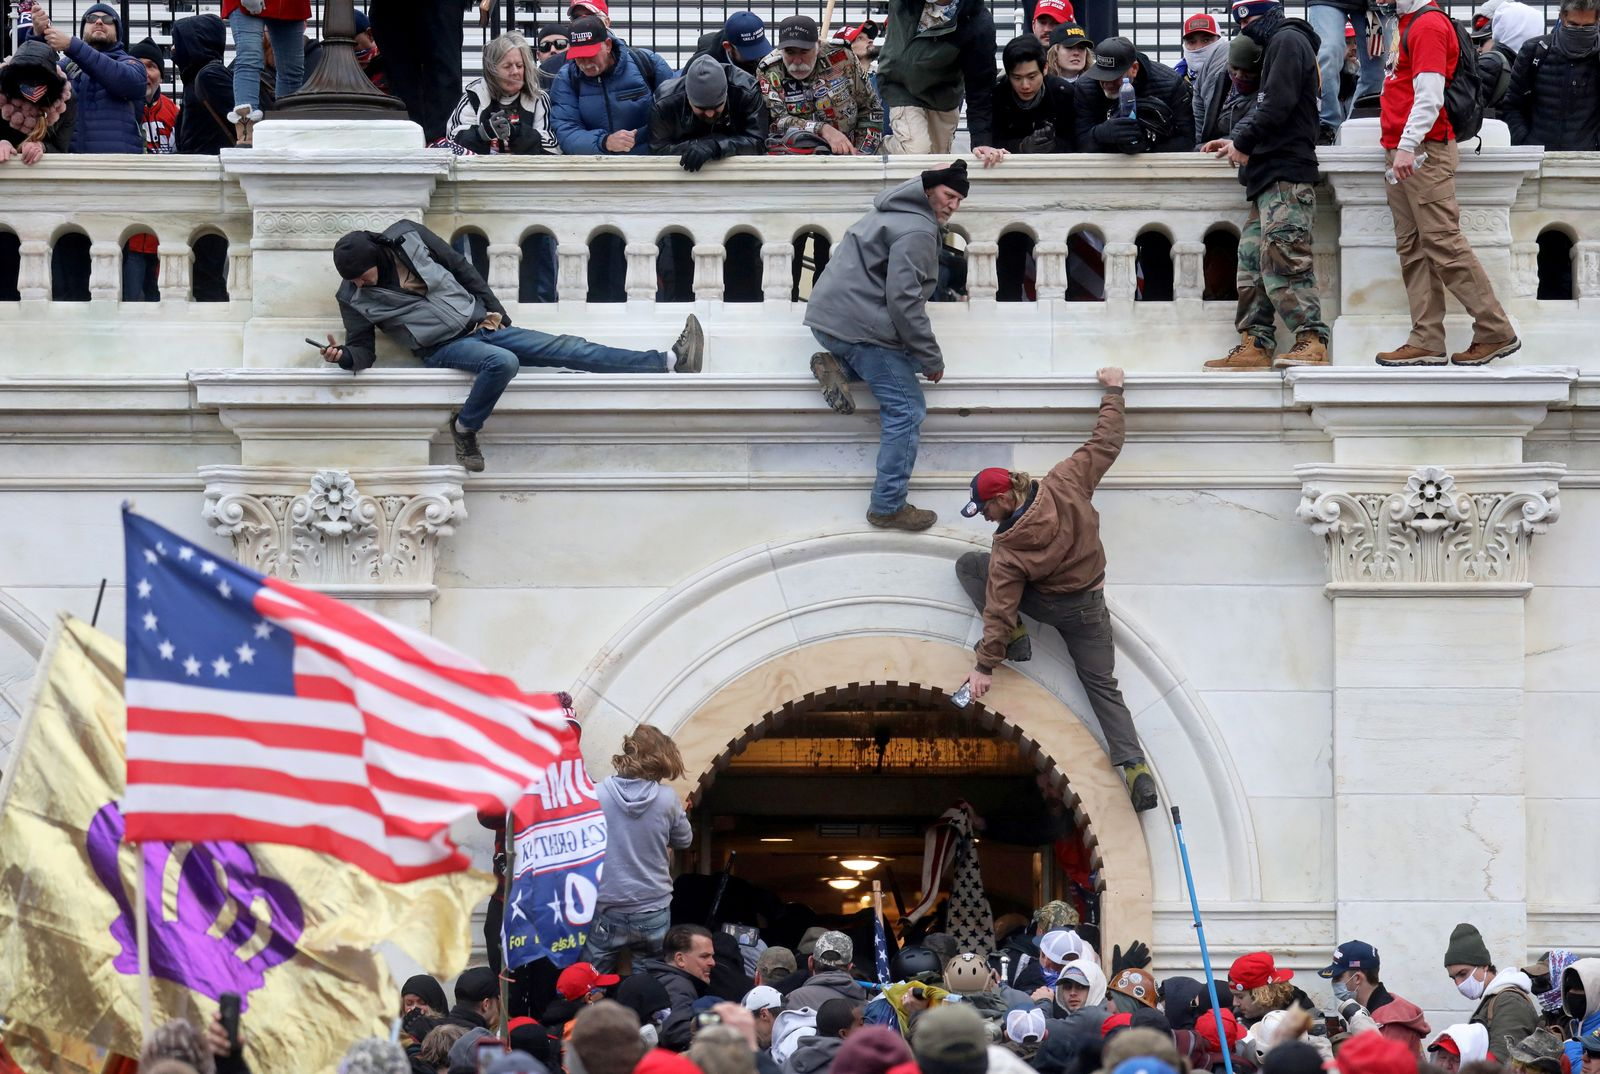 FILE PHOTO: The U.S. Capitol Building is stormed by a pro-Trump mob on January 6, 2021